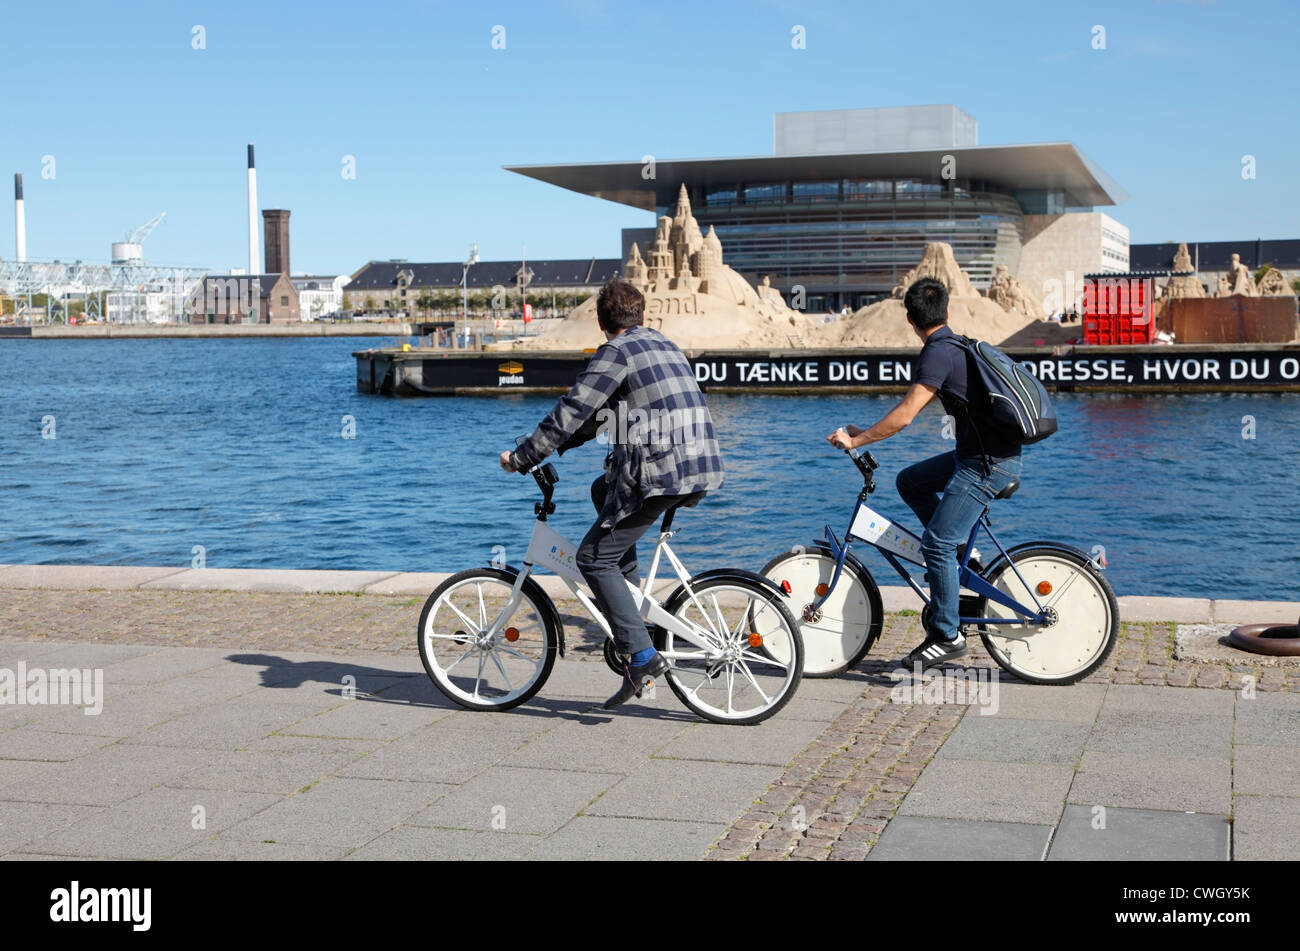 Two male tourists cycling along the quayside at Larsens Plads on the free city bikes looking at sand sculptures - Stock Image